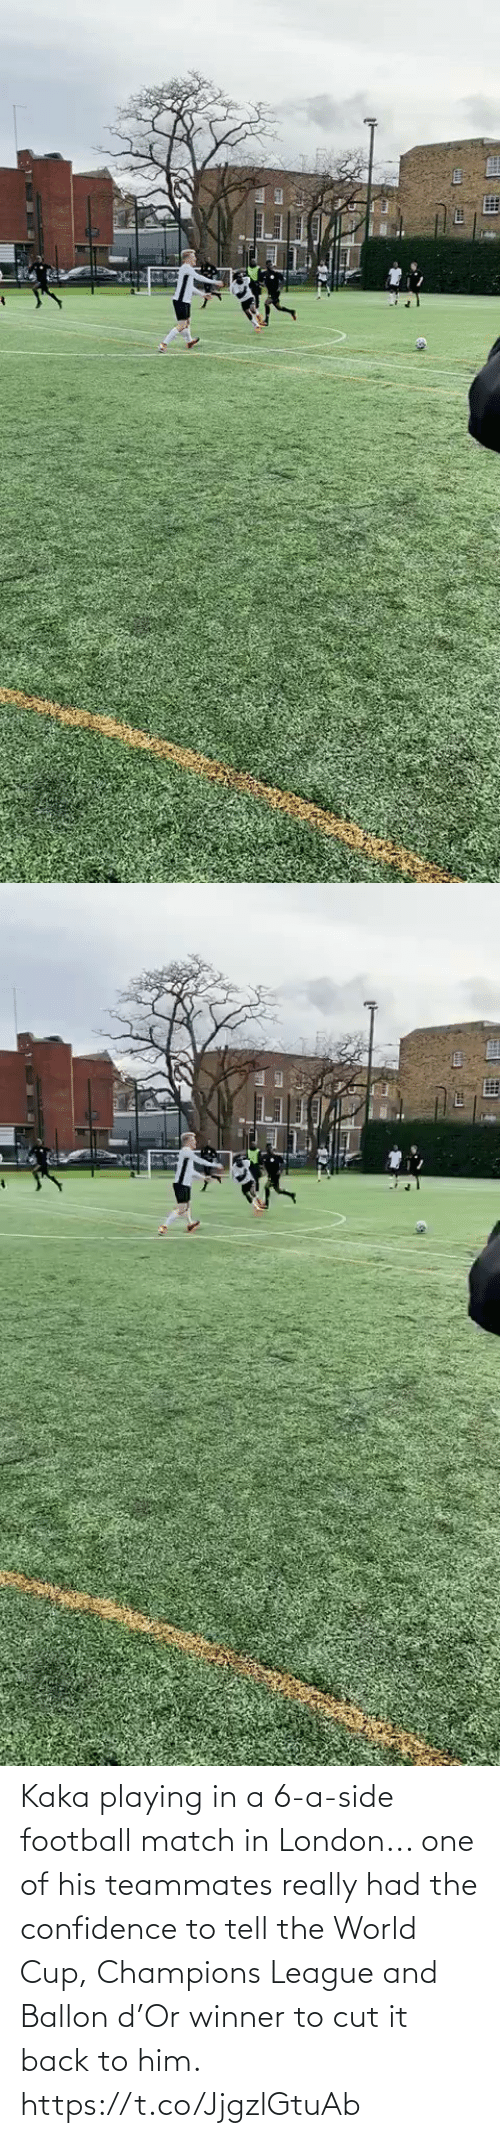 really: Kaka playing in a 6-a-side football match in London... one of his teammates really had the confidence to tell the World Cup, Champions League and Ballon d'Or winner to cut it back to him.   https://t.co/JjgzlGtuAb